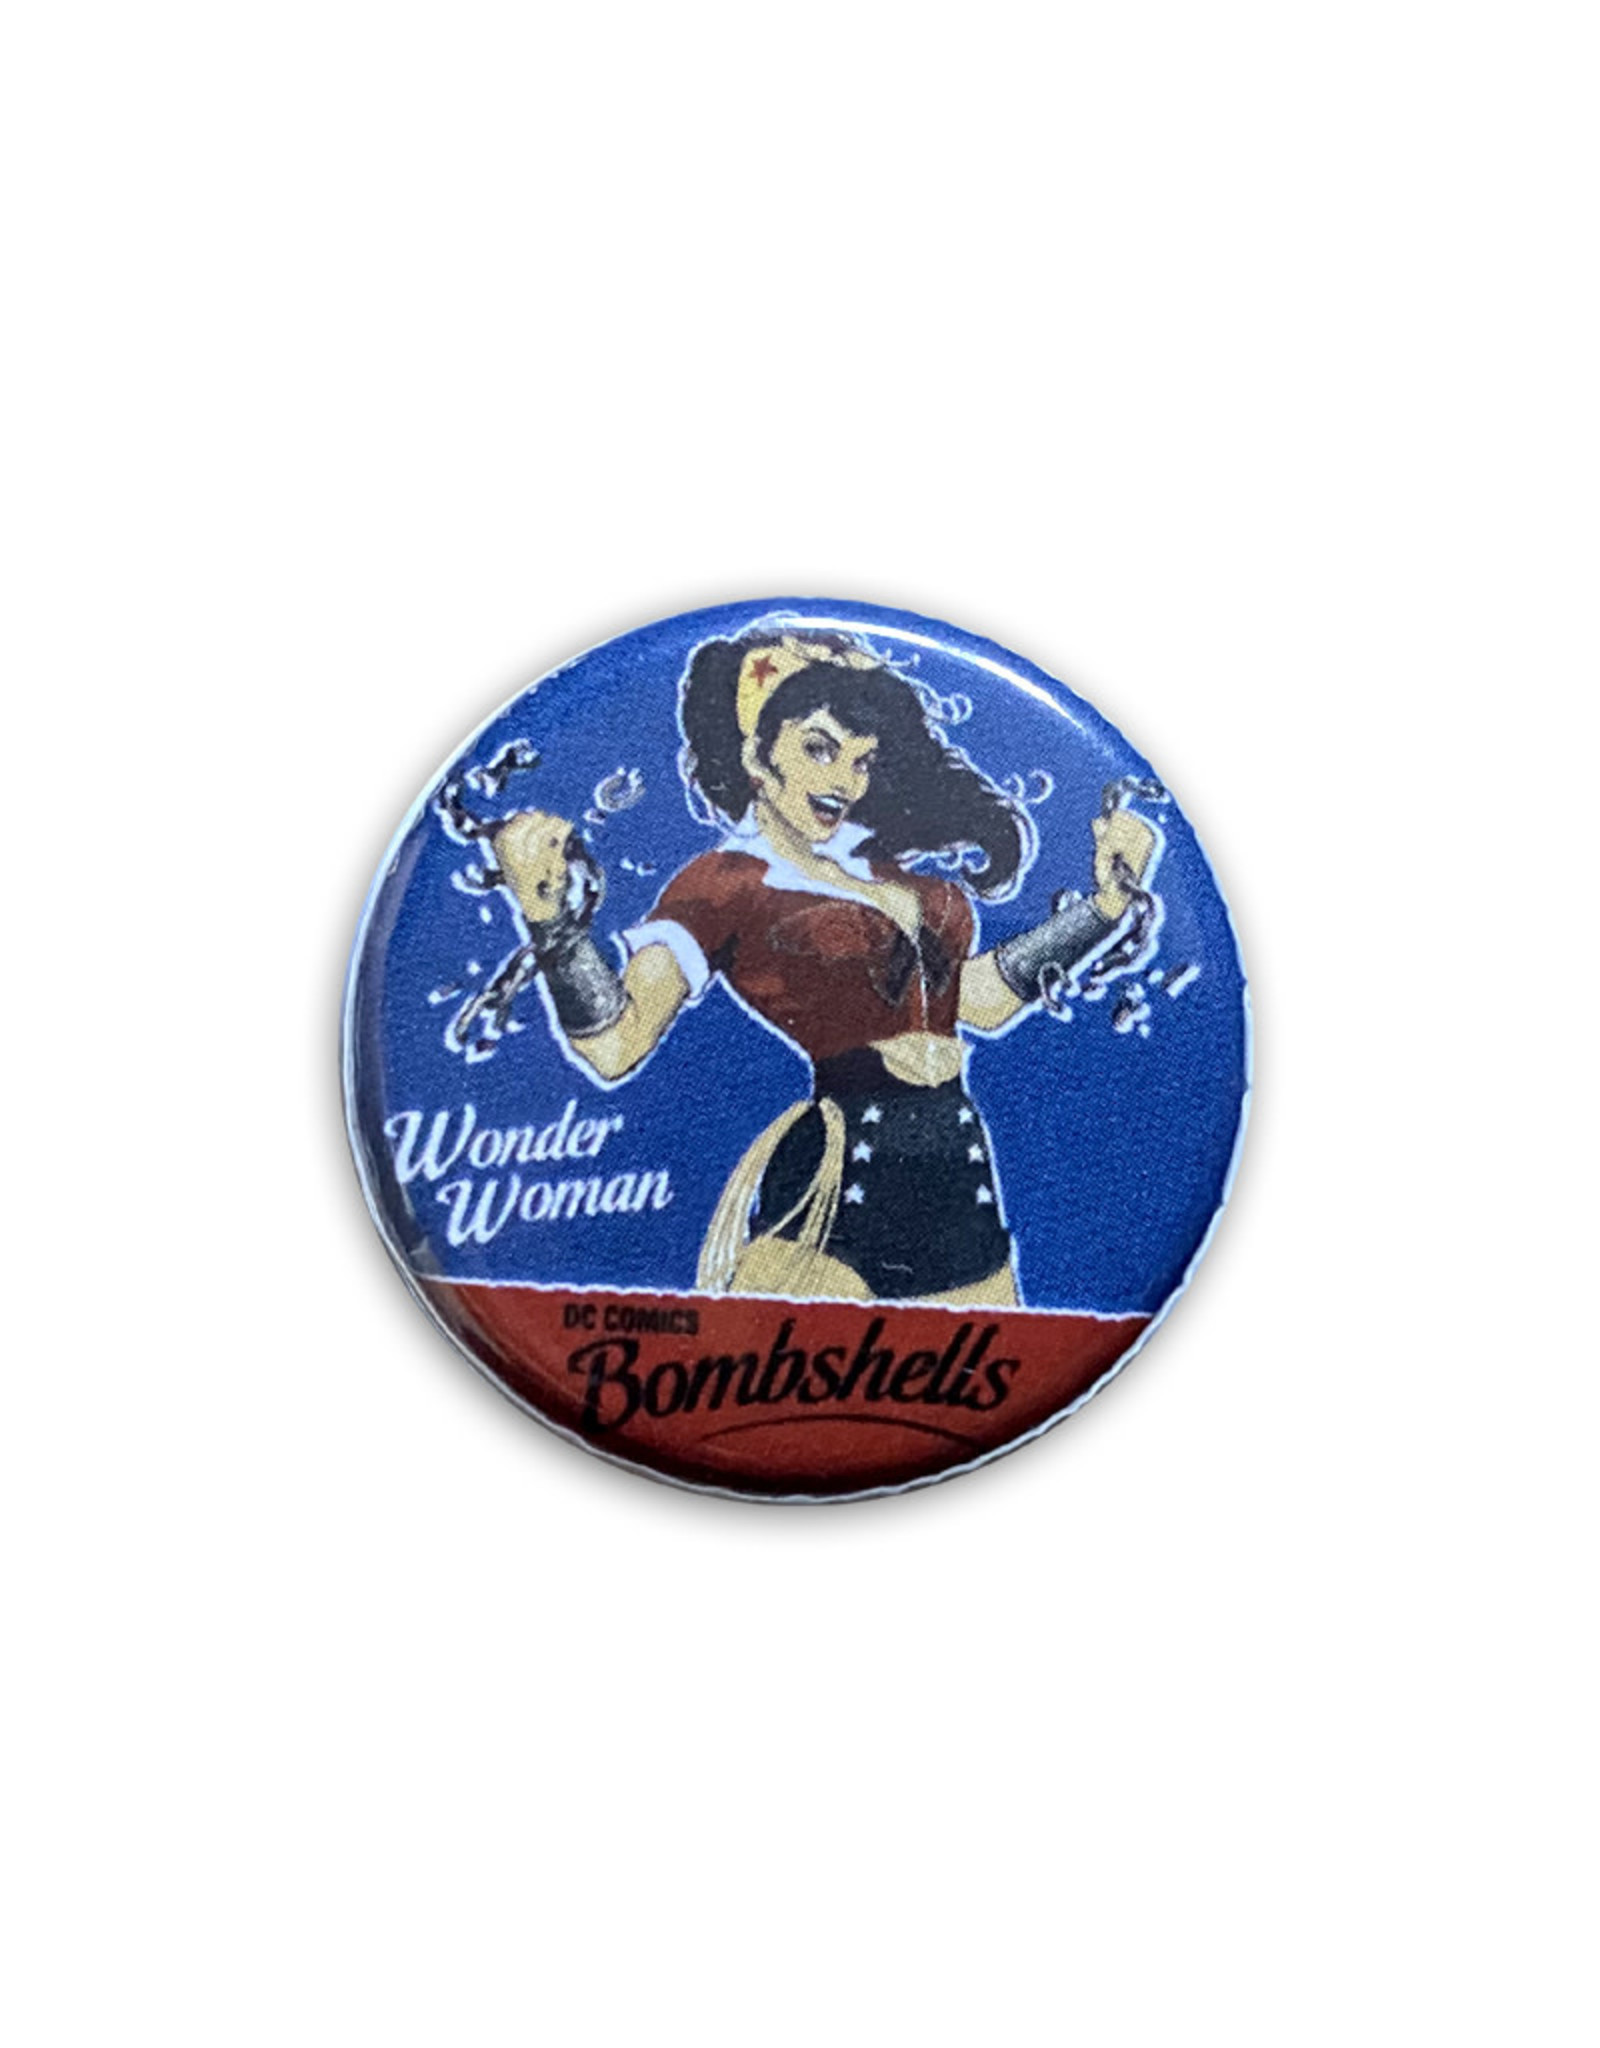 Dc comics Dc Comics ( Button ) Bombshells Wonder Woman